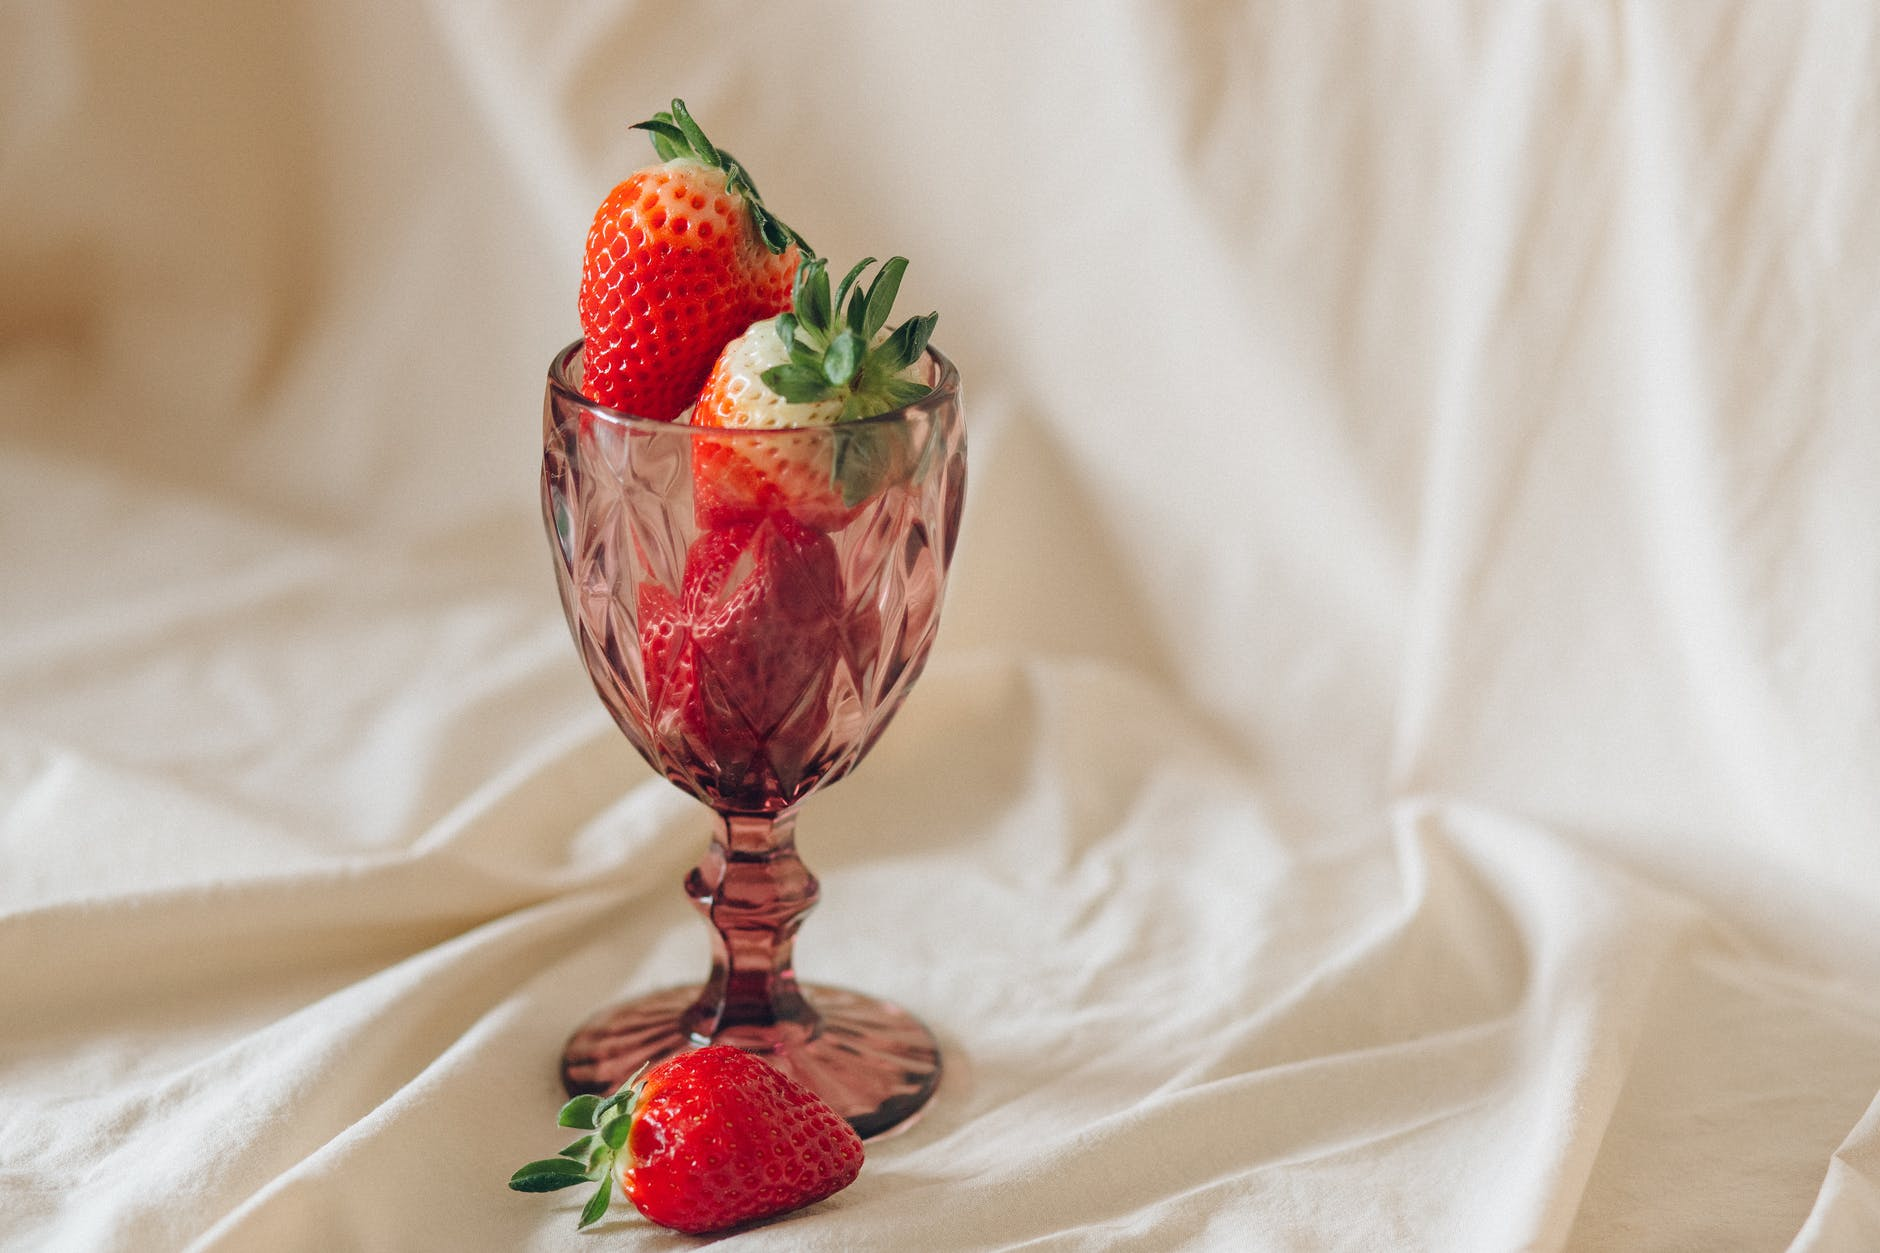 red strawberry in wine glass